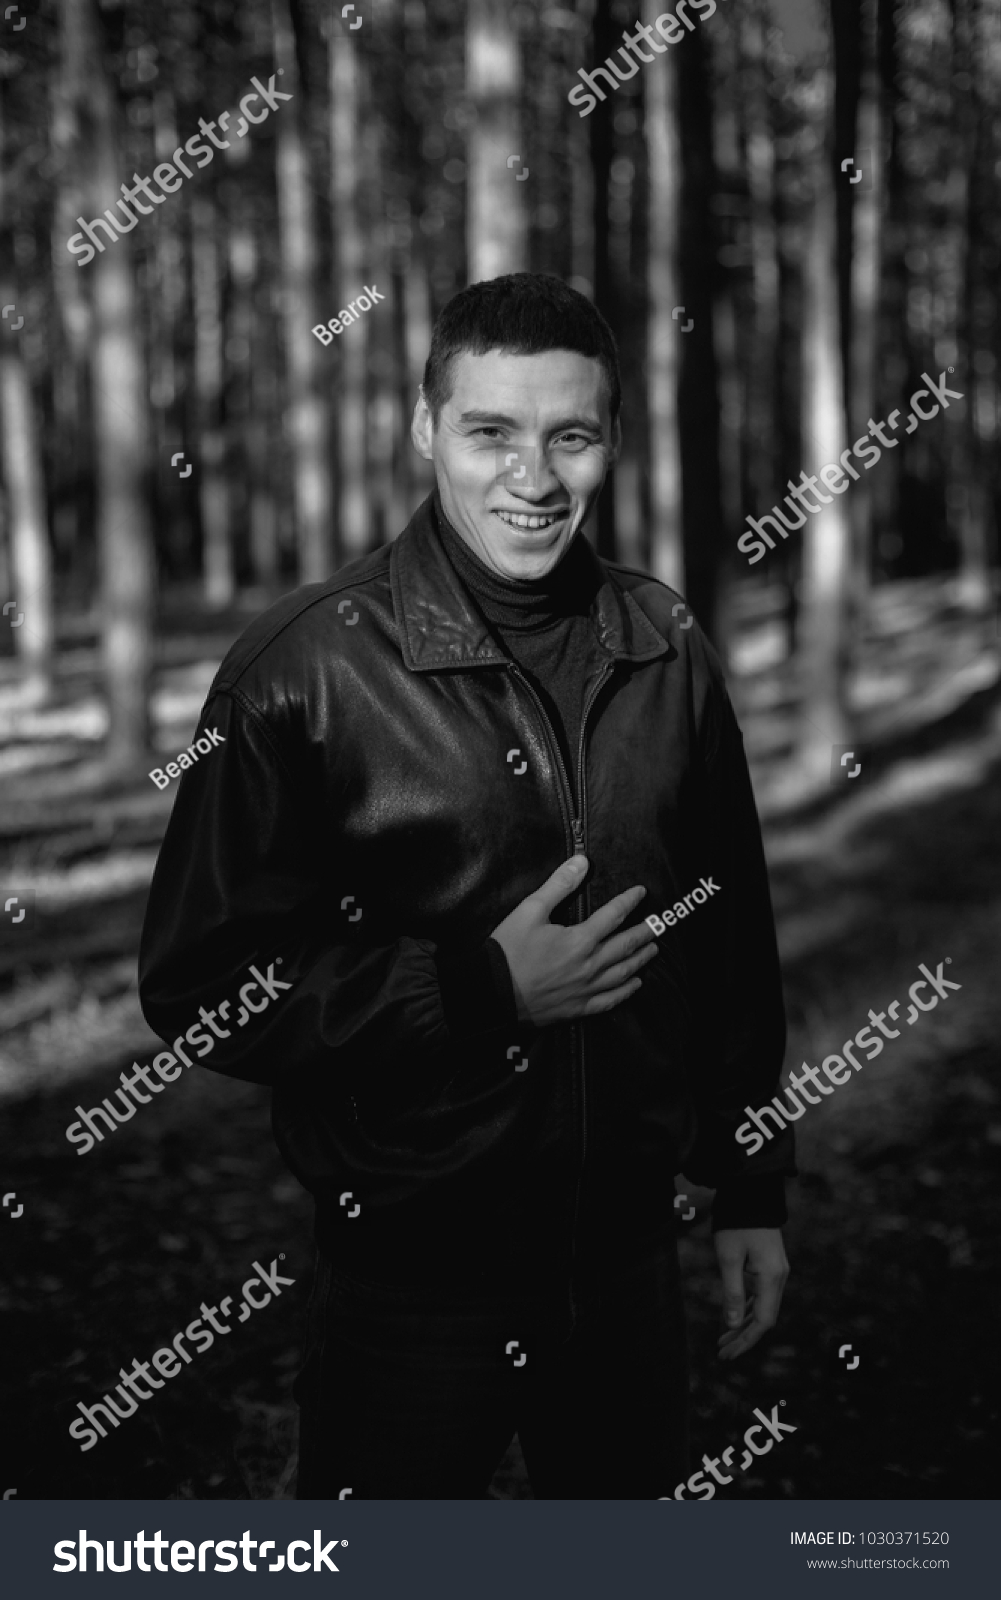 Young Man Criminal Appearance Black Leather Stock Photo Edit Now